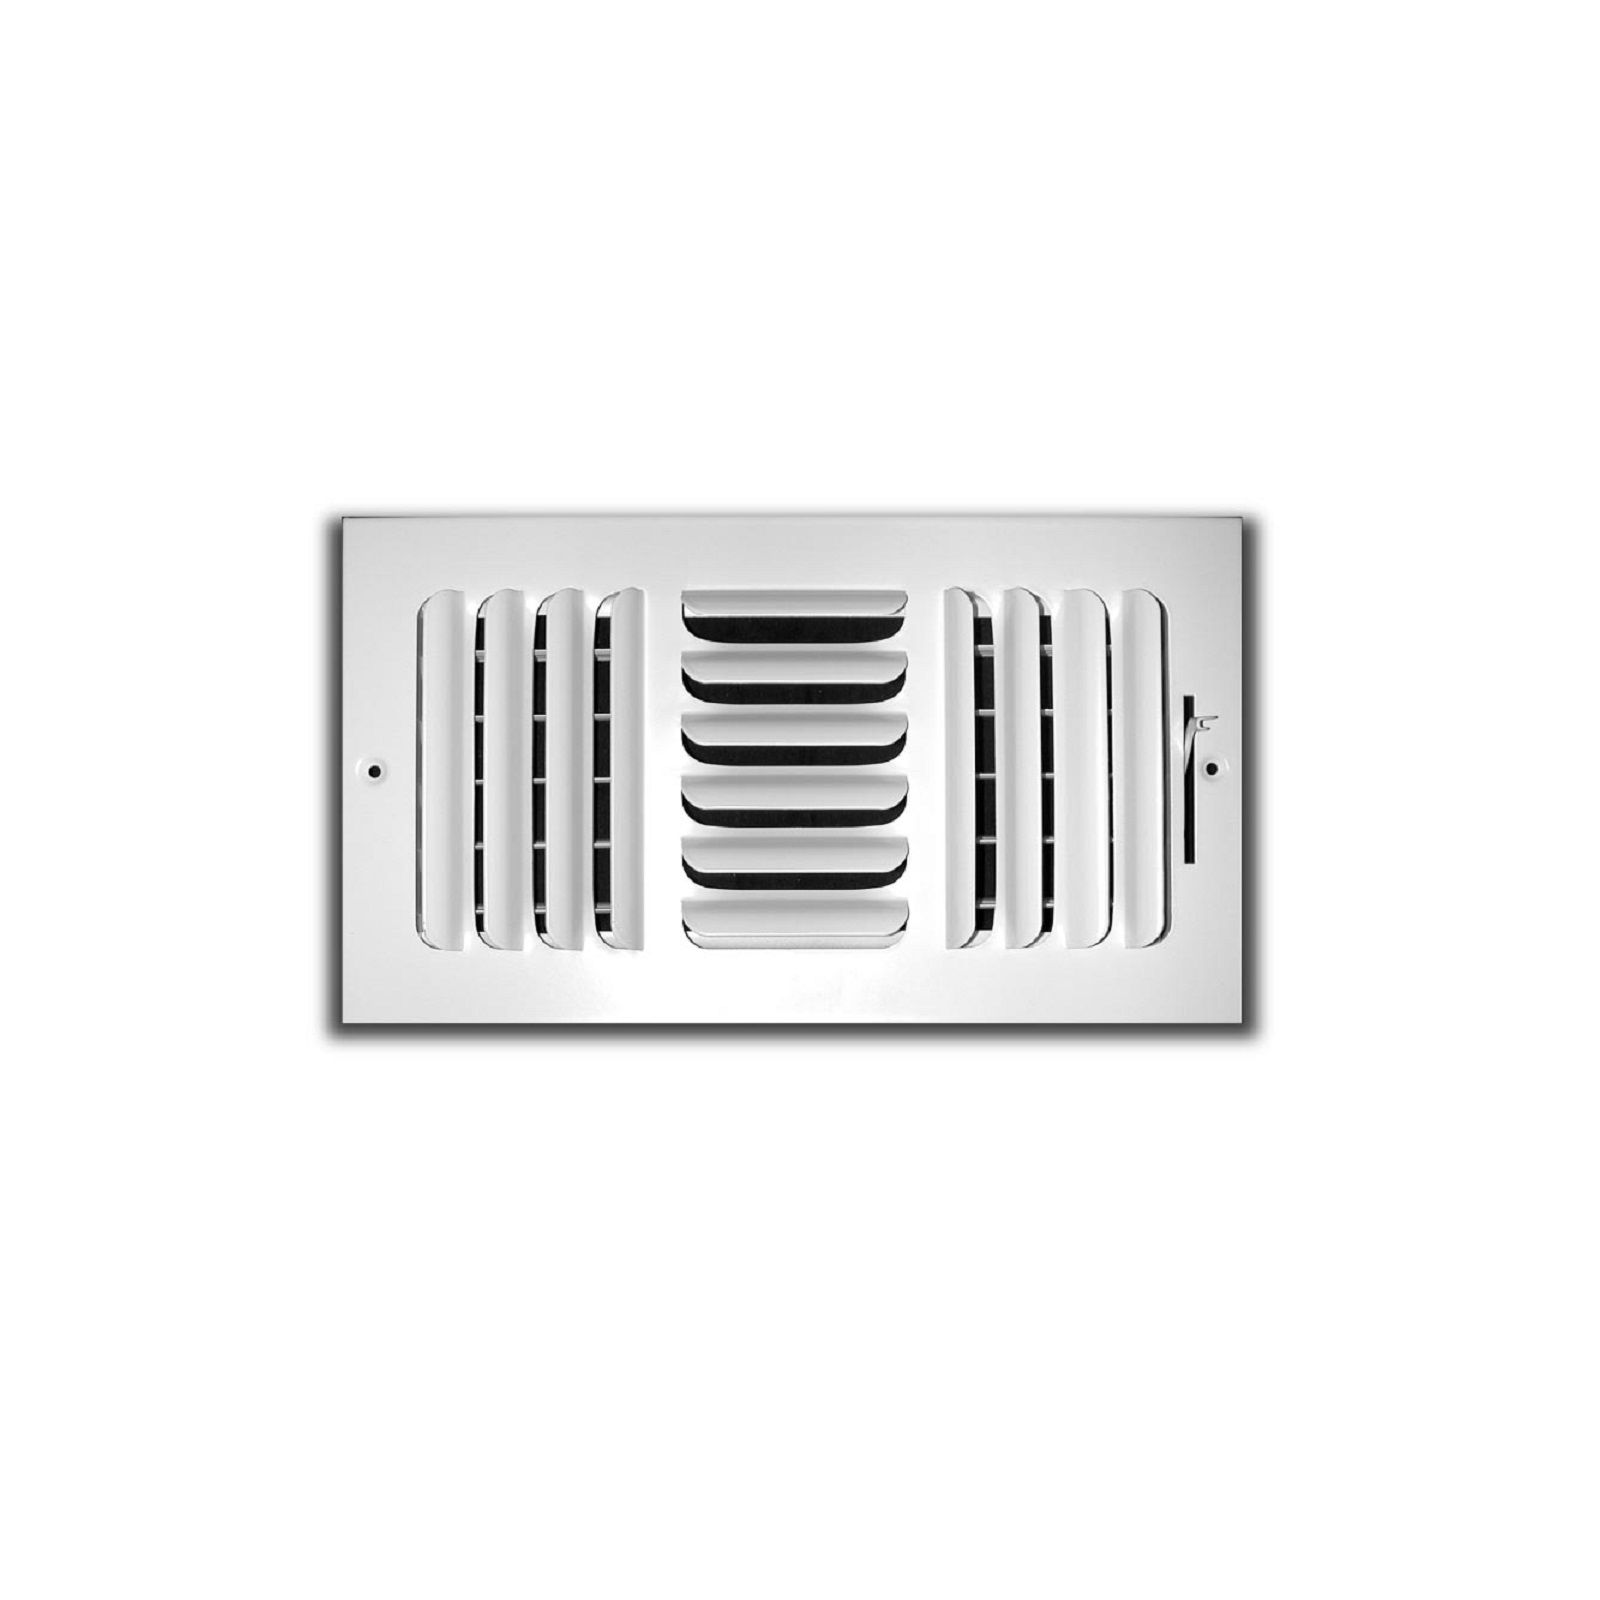 "TRUaire 403M 08X06 - Fixed Curved Blade Wall/Ceiling Register With Multi Shutter Damper, 3-Way, White, 08"" X 06"""